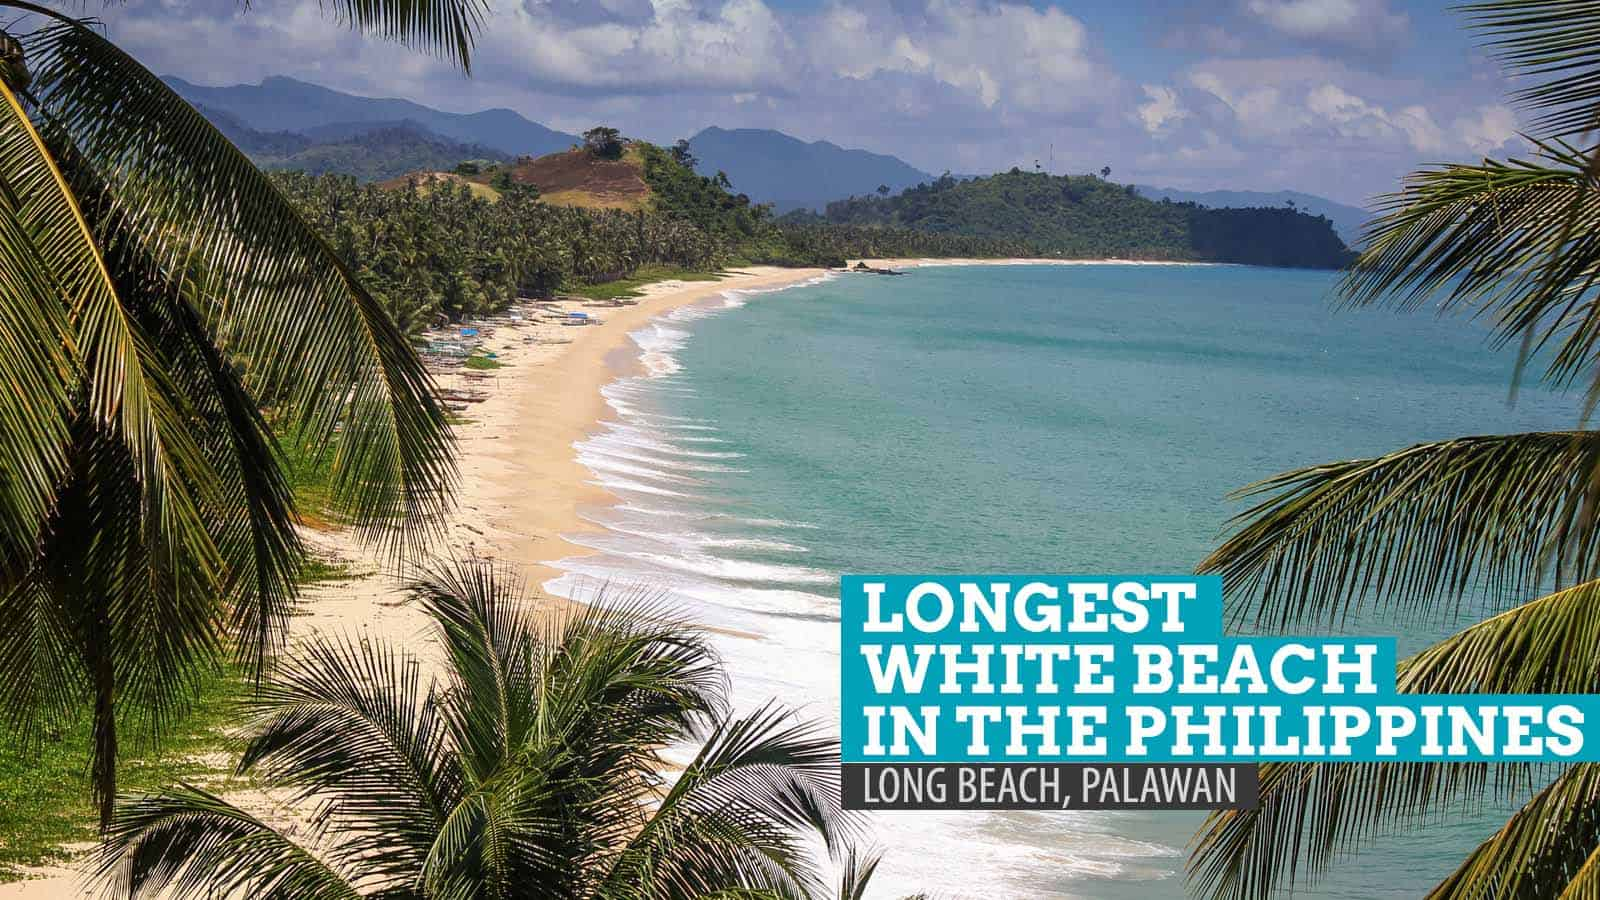 LONG BEACH, SAN VICENTE, PALAWAN: The Longest White Beach in the Philippines